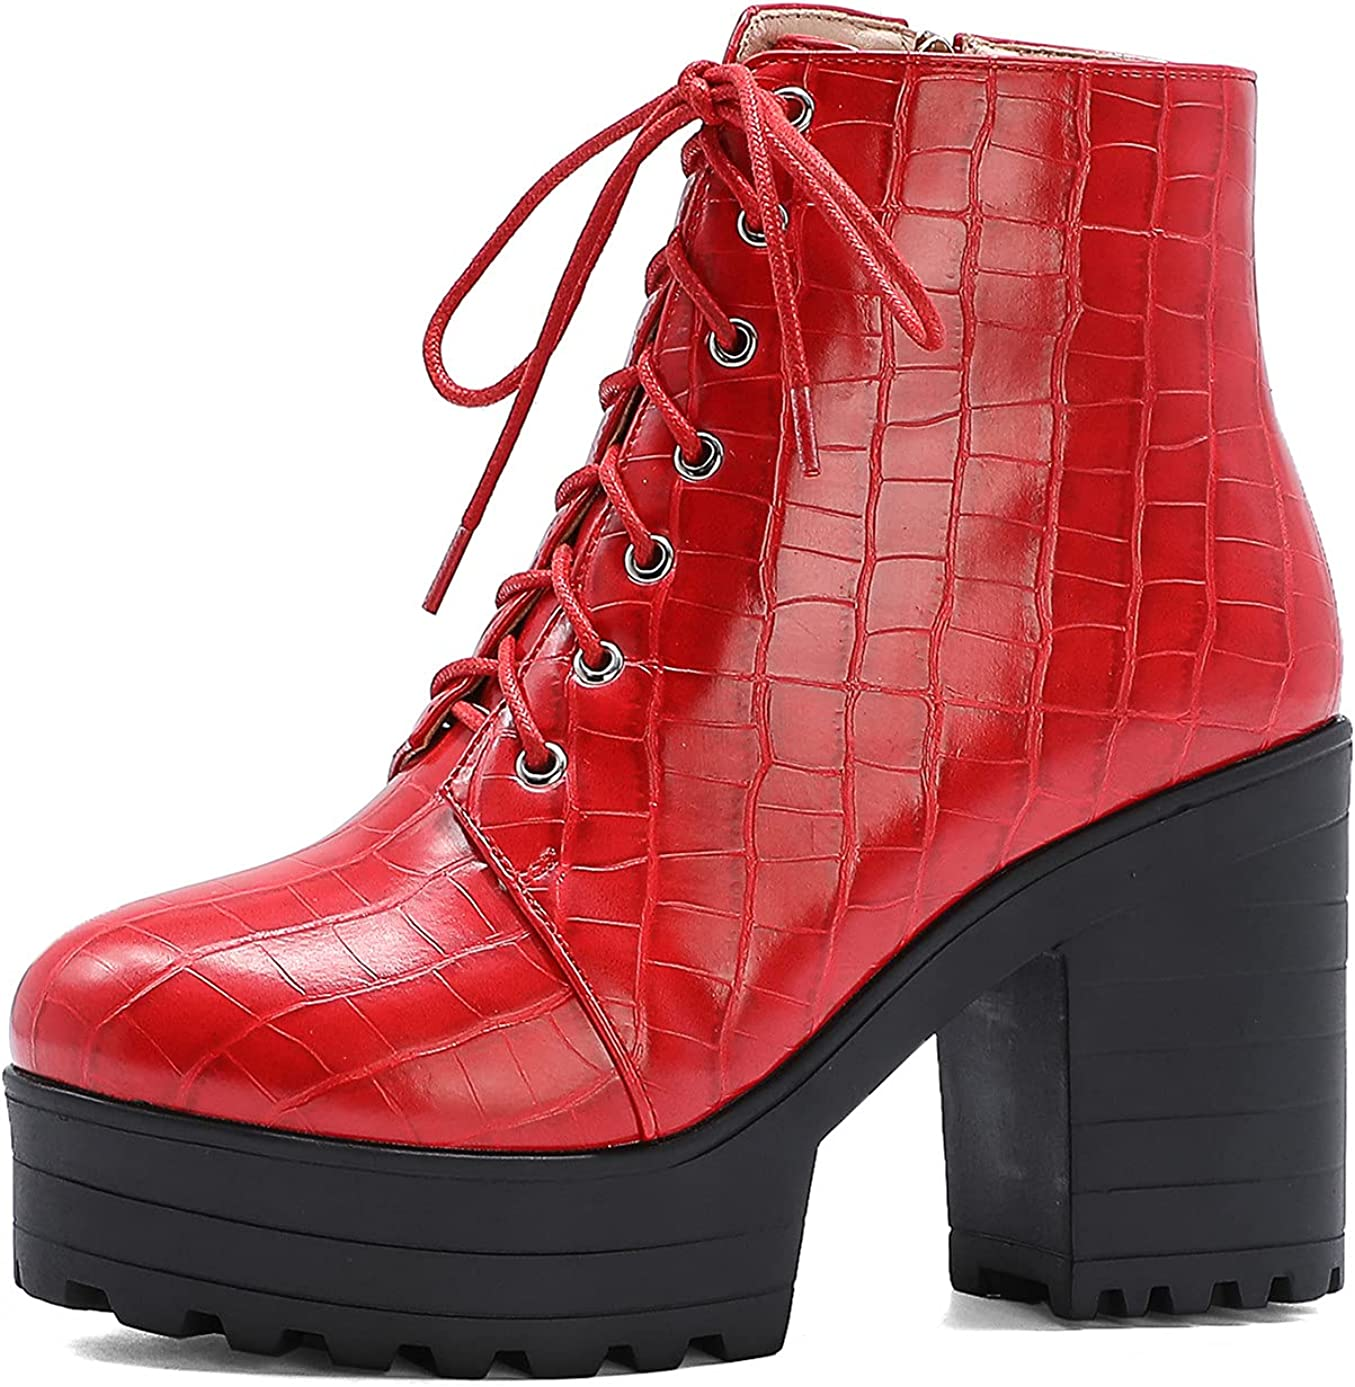 Women's Platform High Heel Ankle Chunky Boots Surprise Large discharge sale price with Zipper L